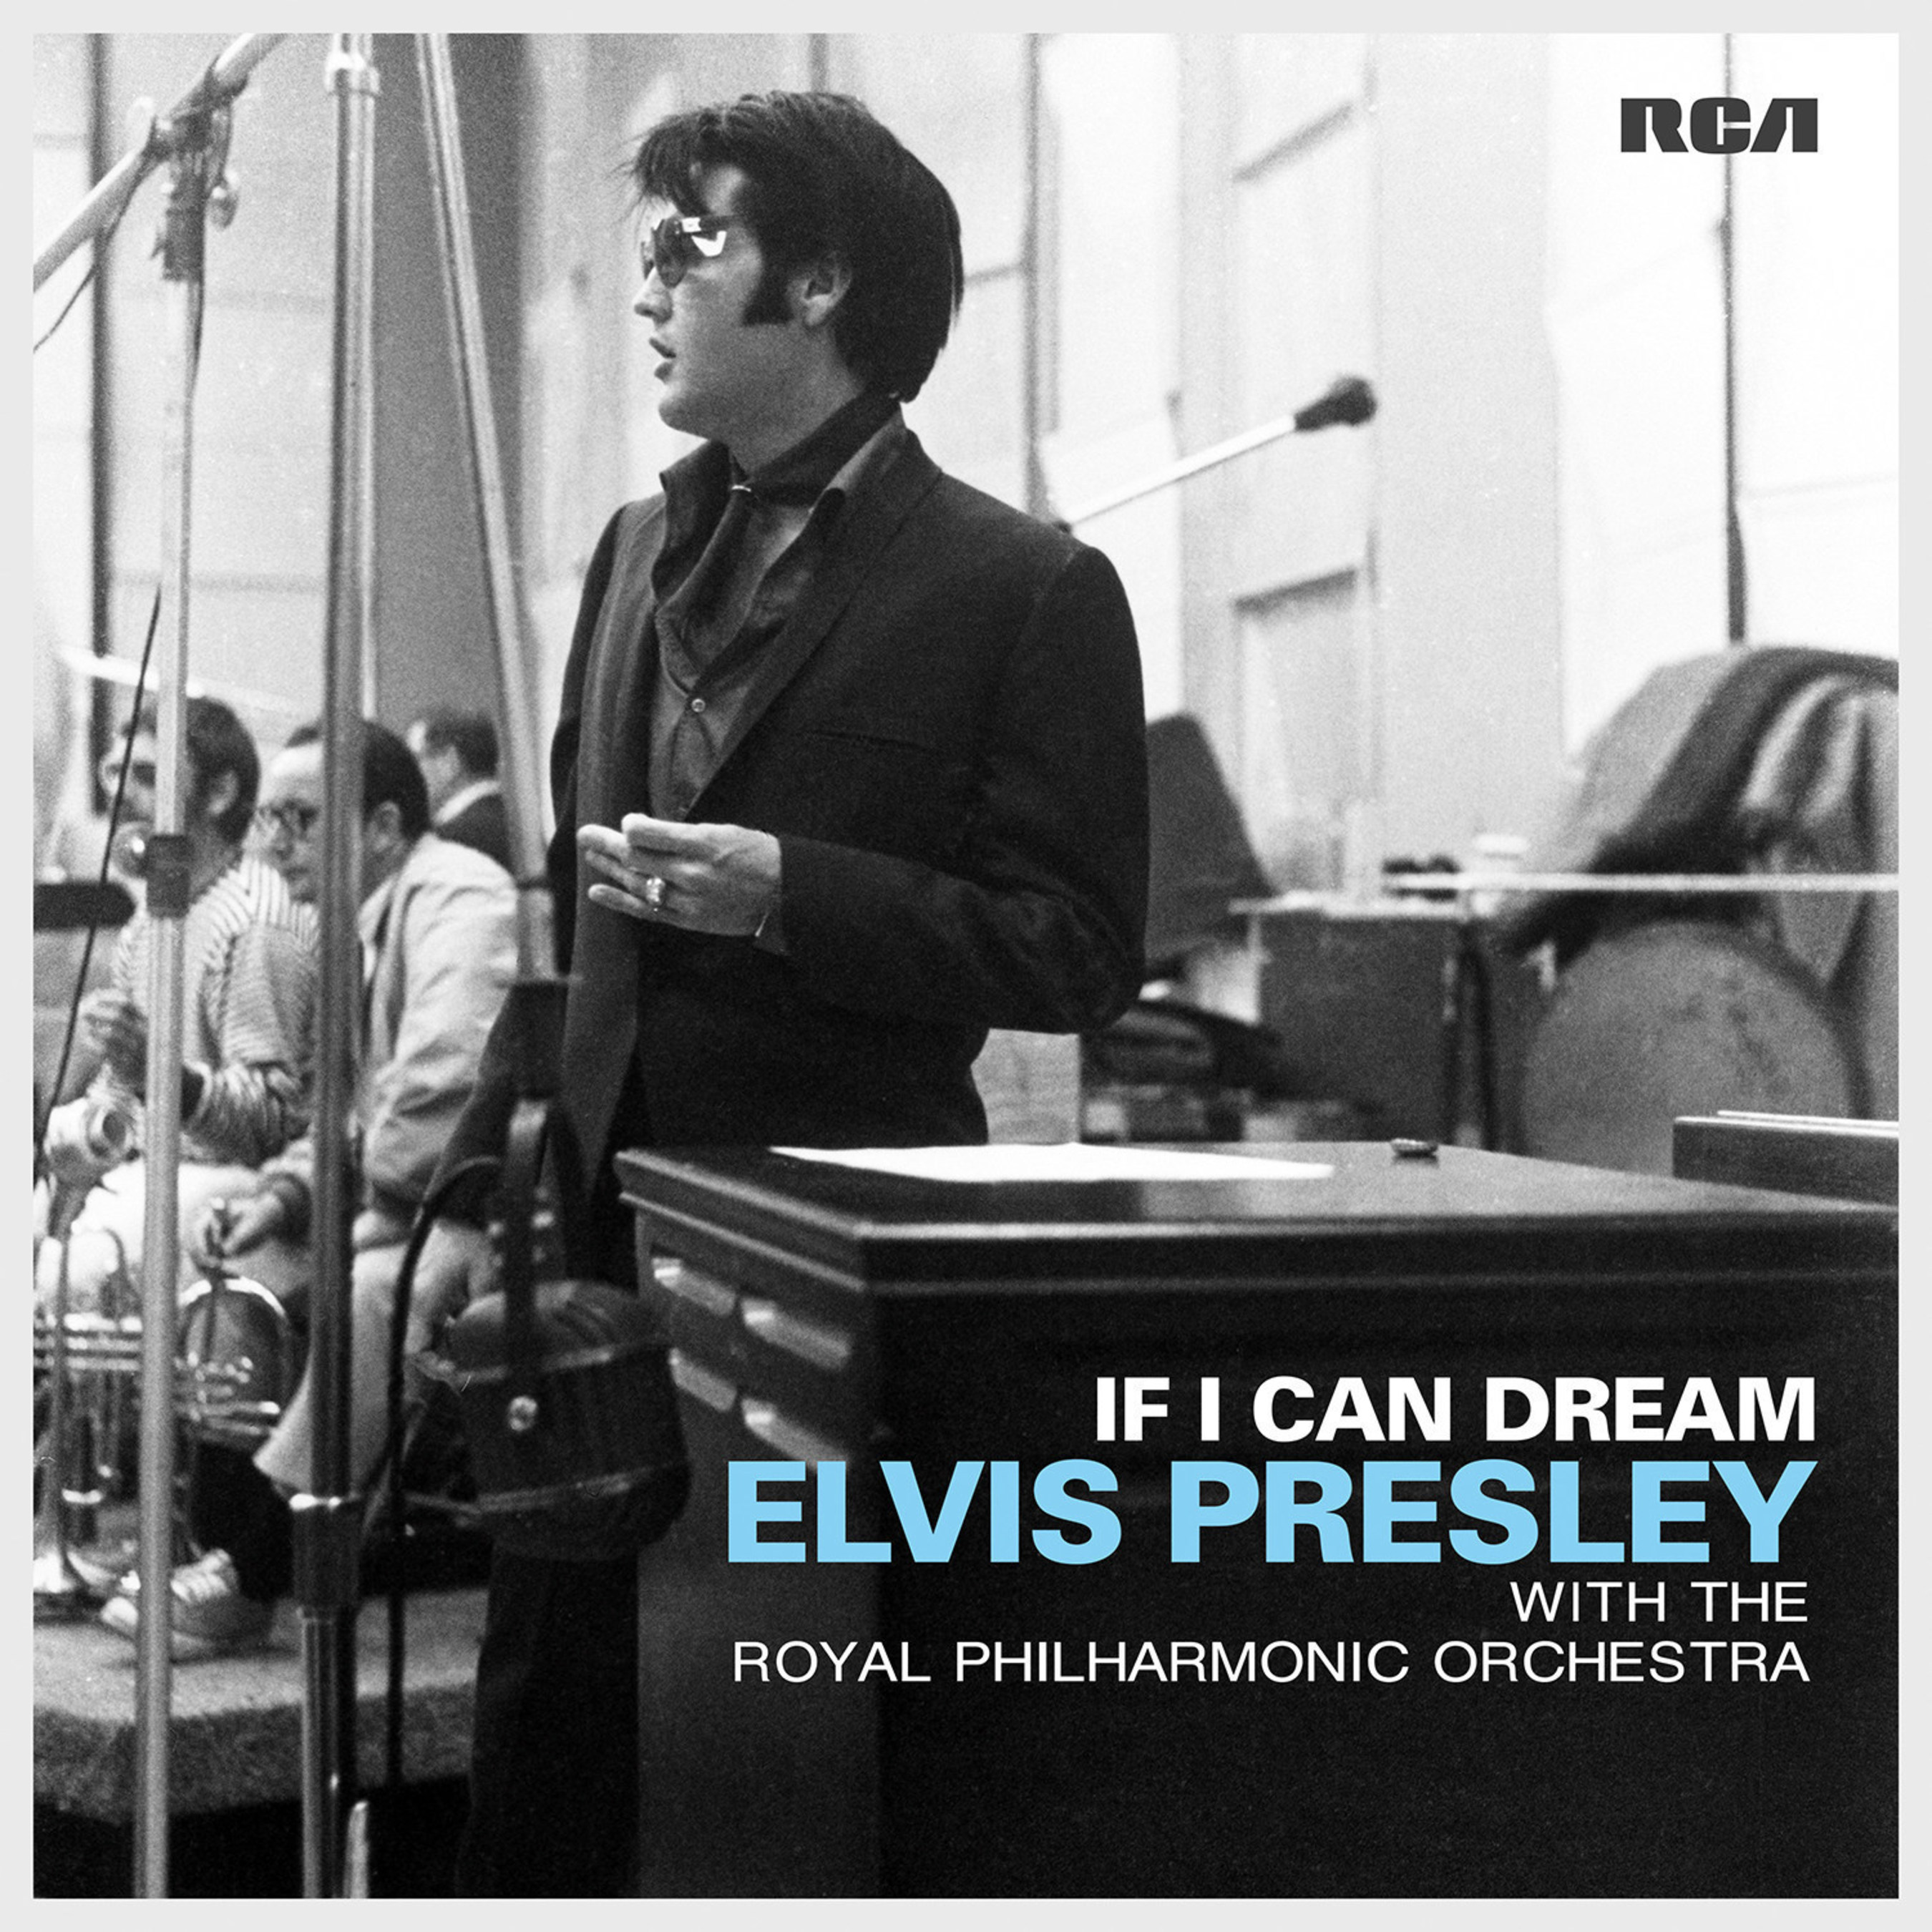 New Elvis Presley Album If I Can Dream: Elvis Presley With The Royal Philharmonic Orchestra To Be Released October 30 On Sony Music's Legacy Recordings